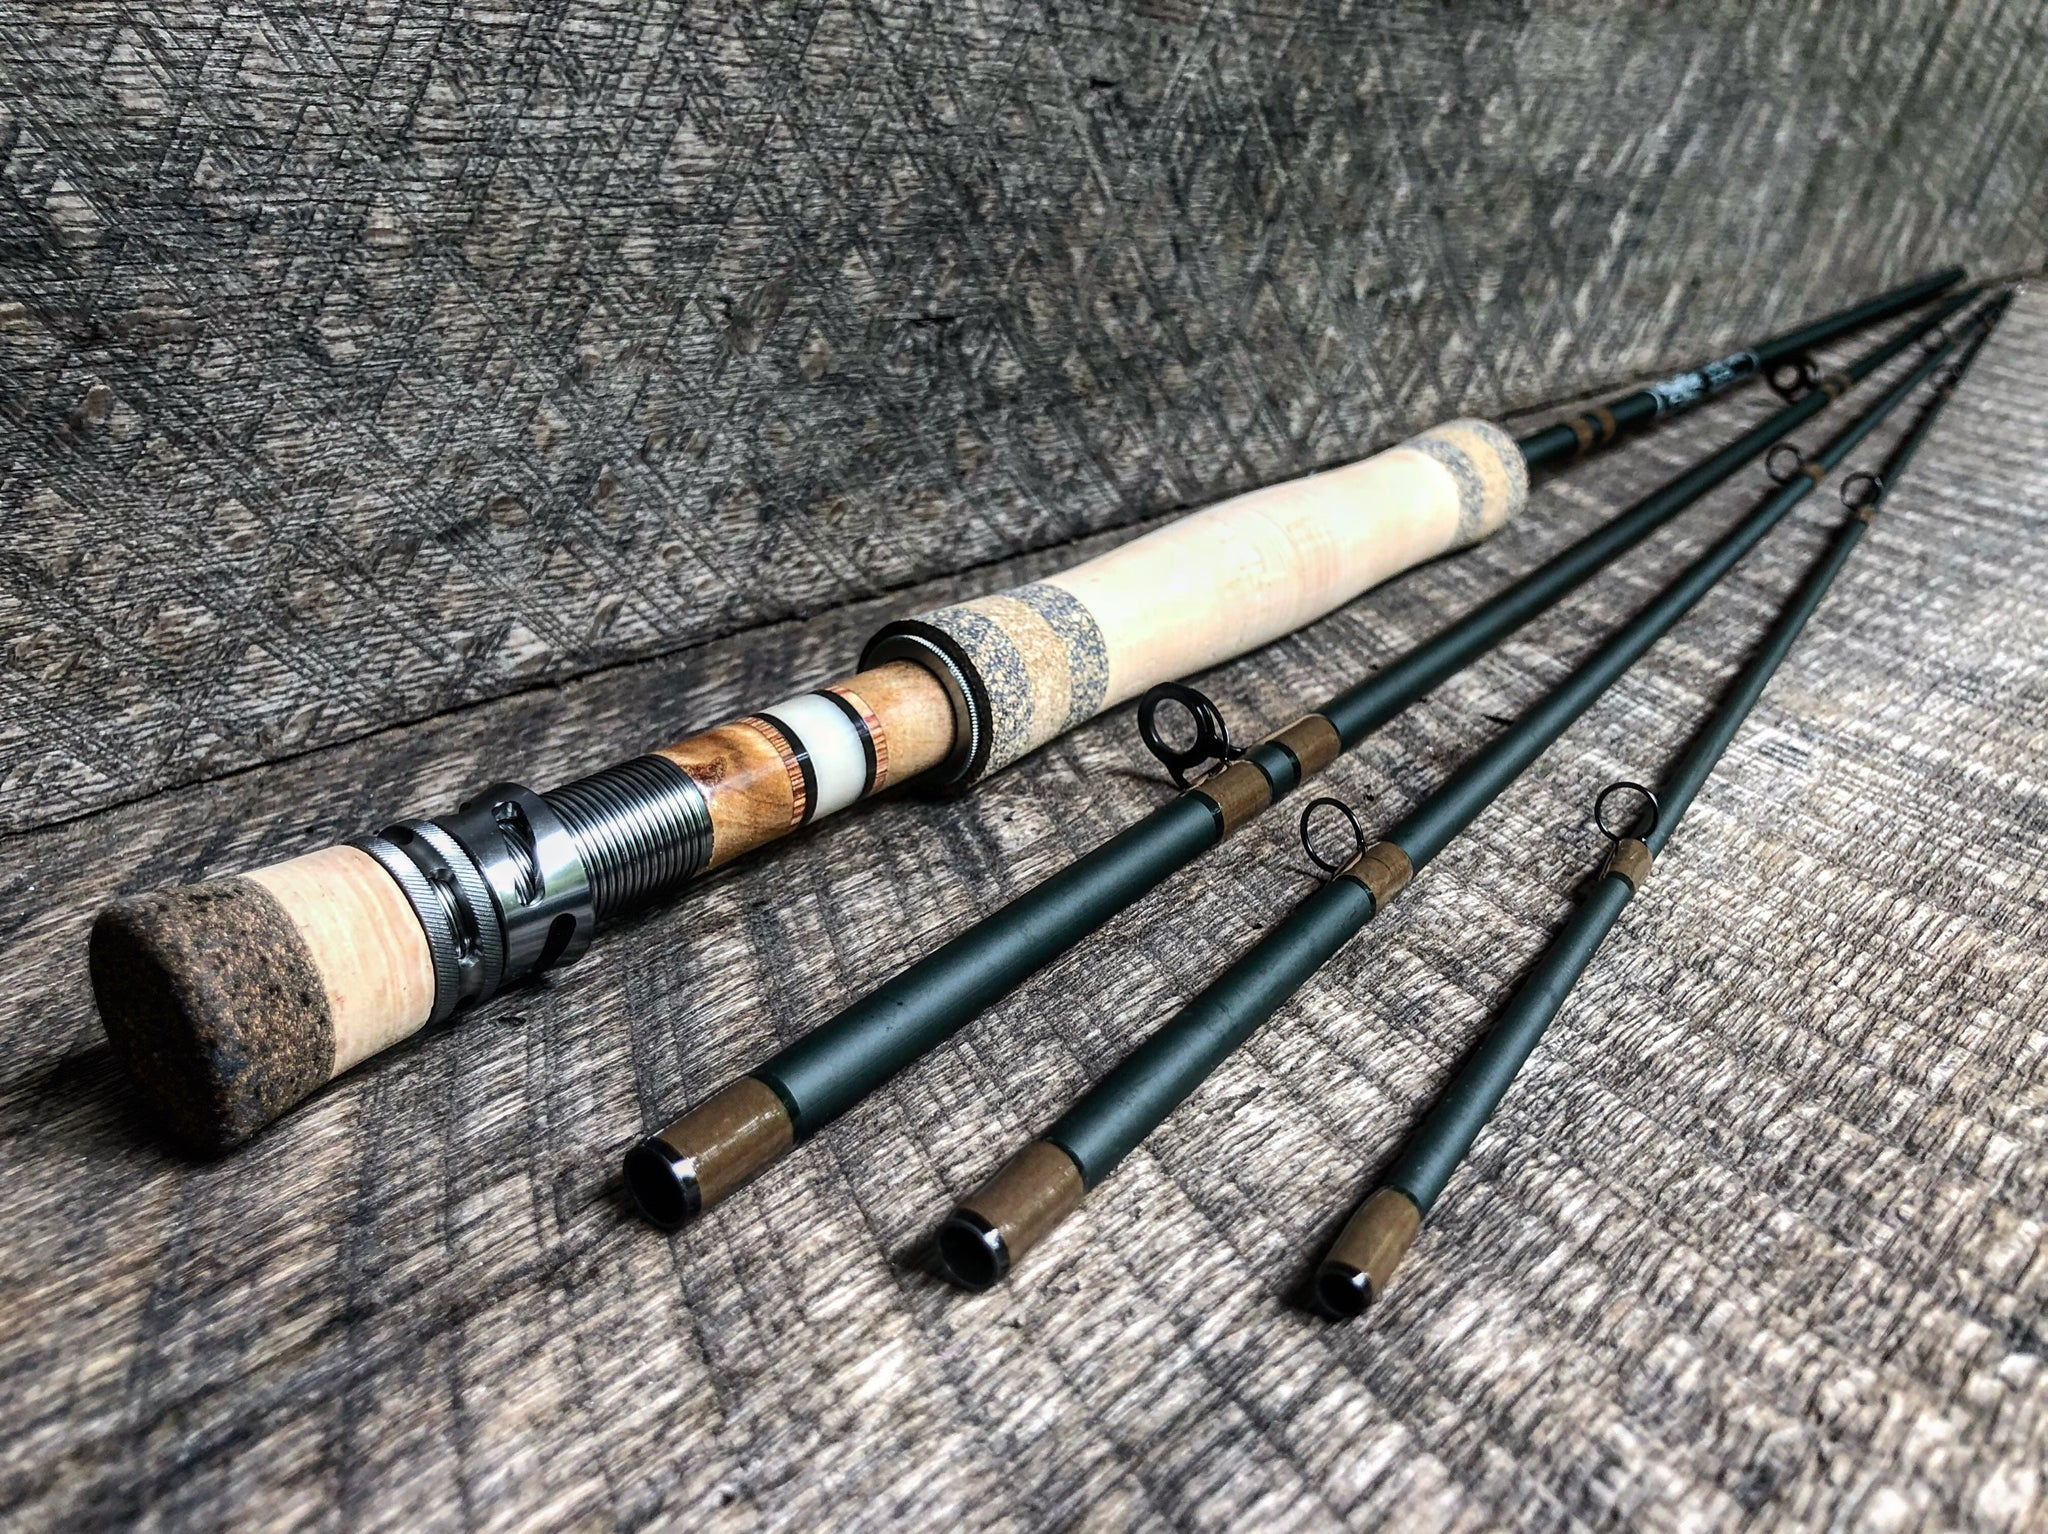 Midnight Special - 6wt - 9' - #0667 Craftsman